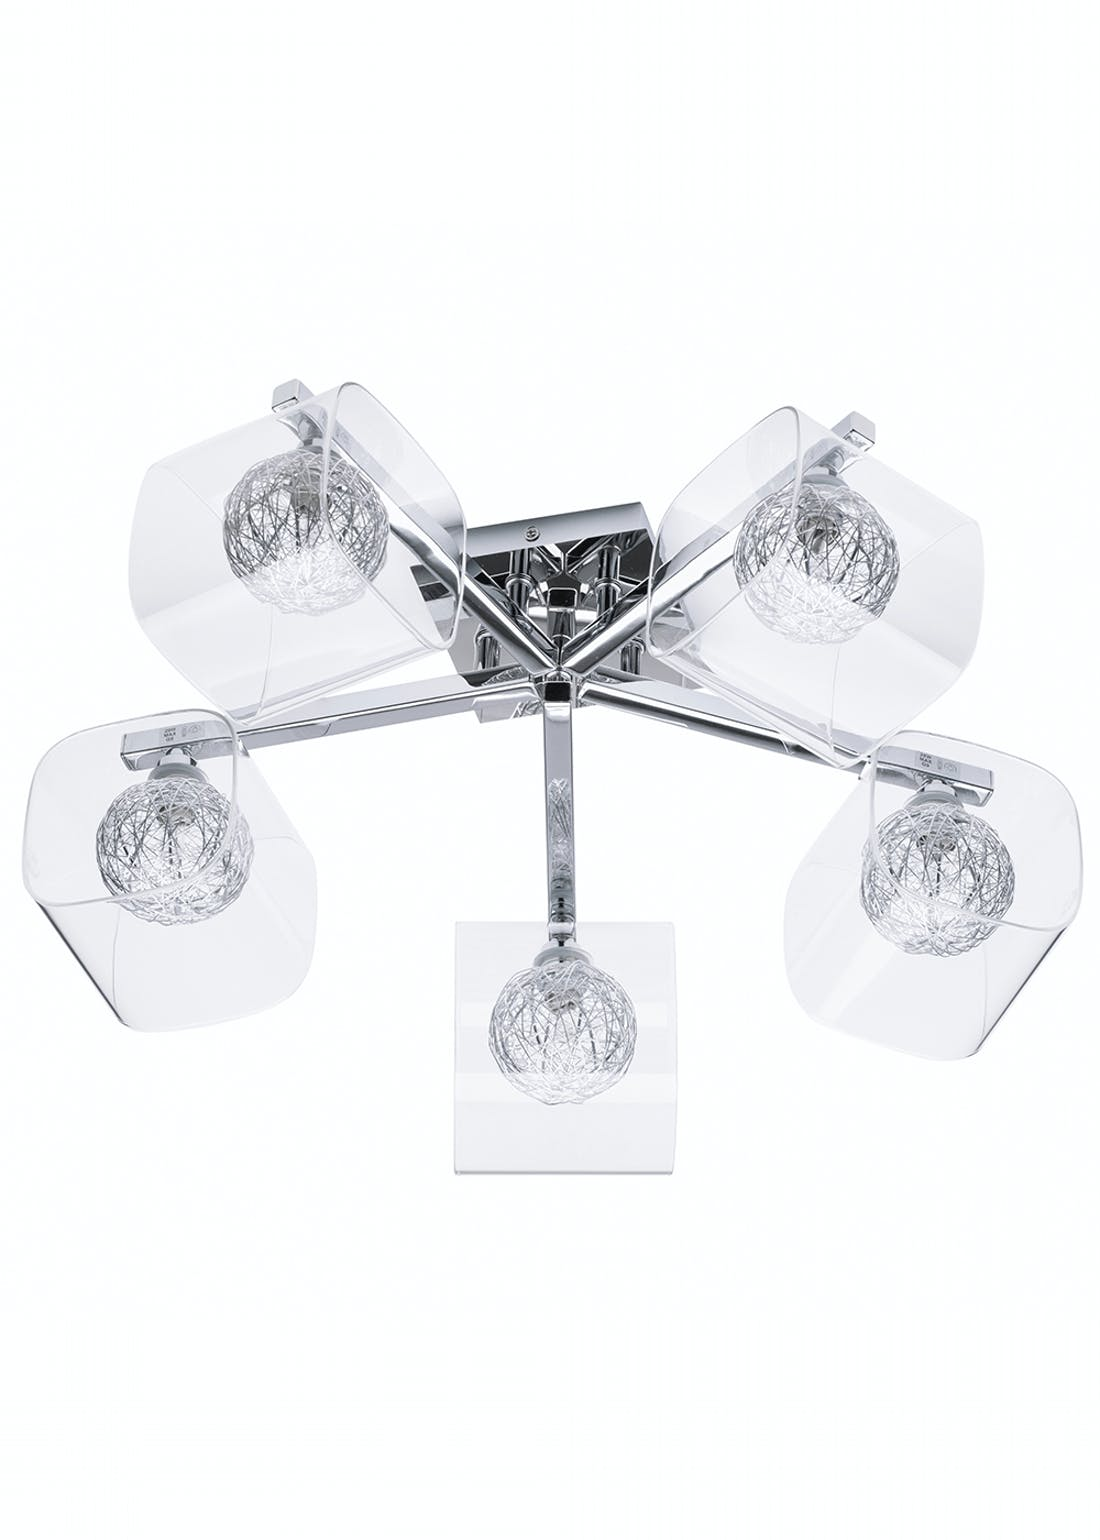 Inlight Veneto 5 Light Wire Globe Semi Flush Ceiling Light (24.5cm x 55cm x 55cm)